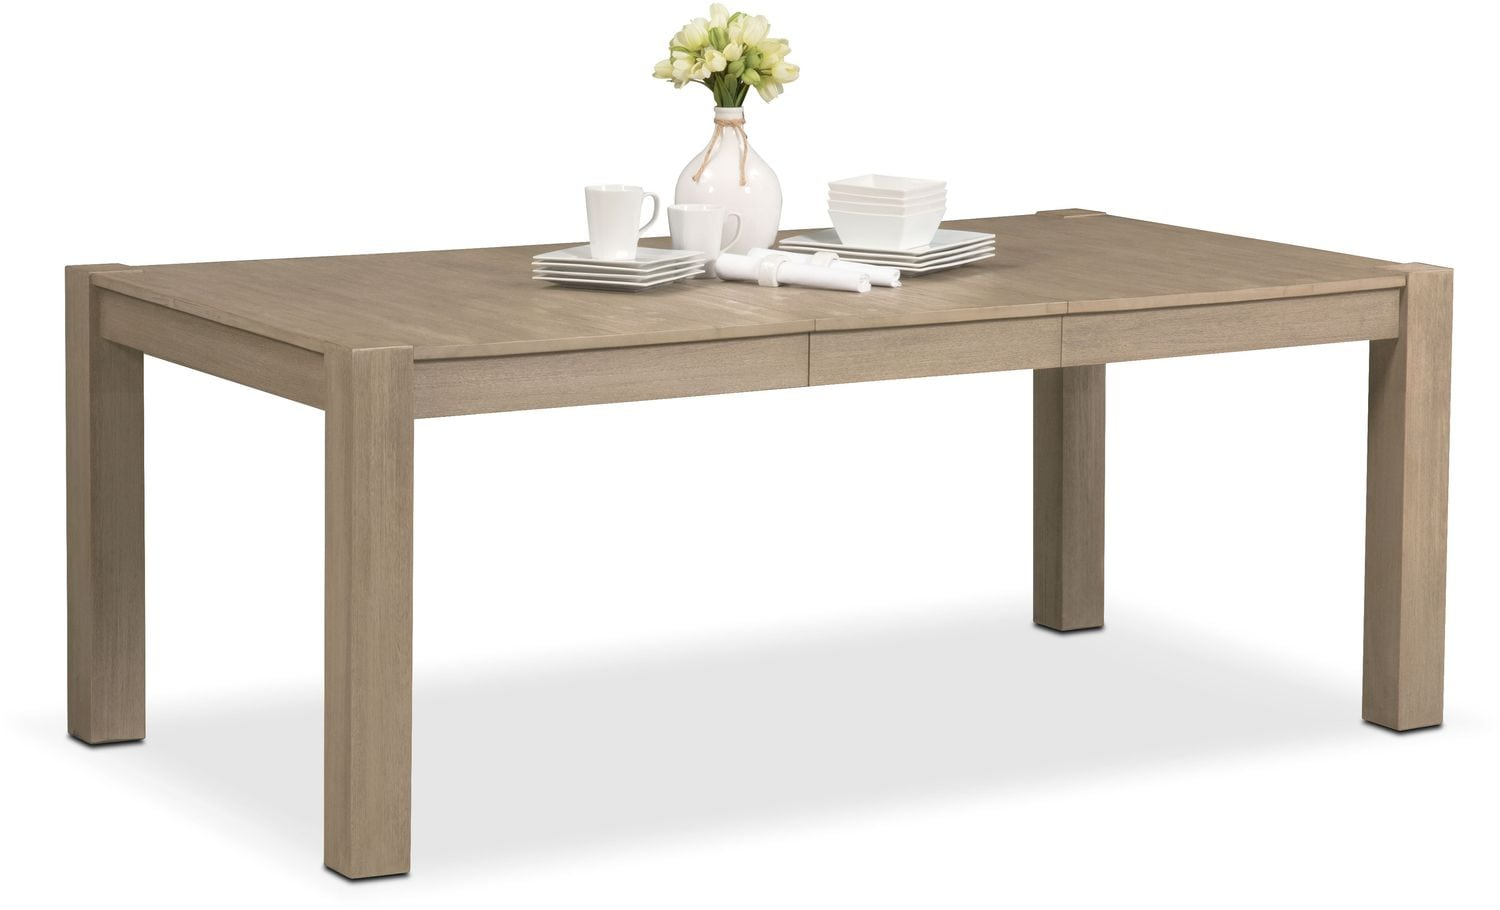 Dining Room Furniture - Tribeca Table